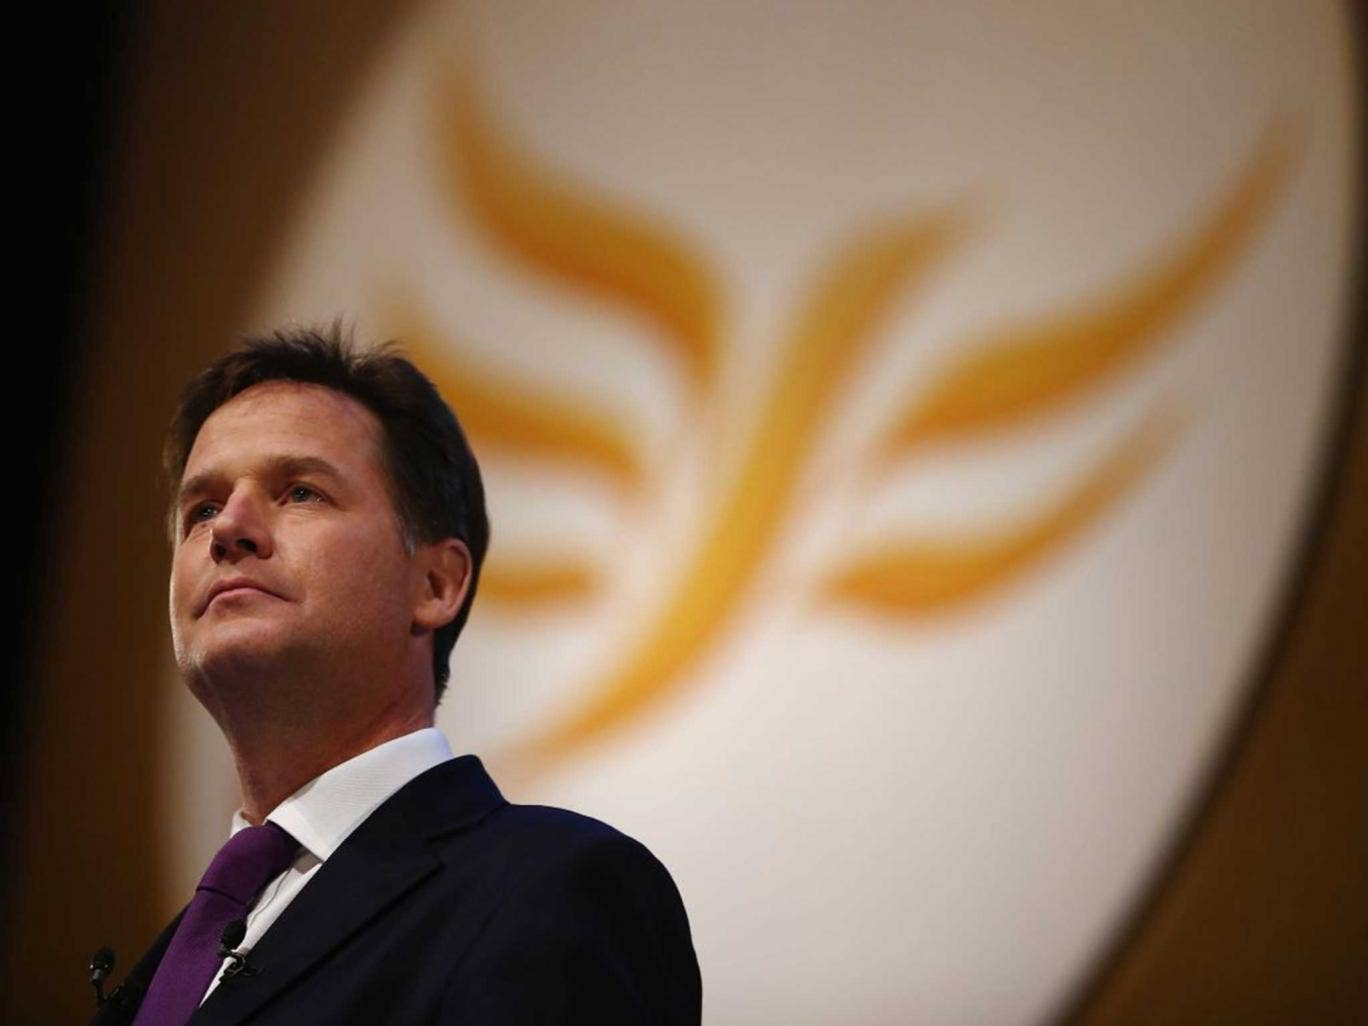 A new election forecast indicates Nick Clegg's Liberal Democrats may hold the power in deciding who forms the next government